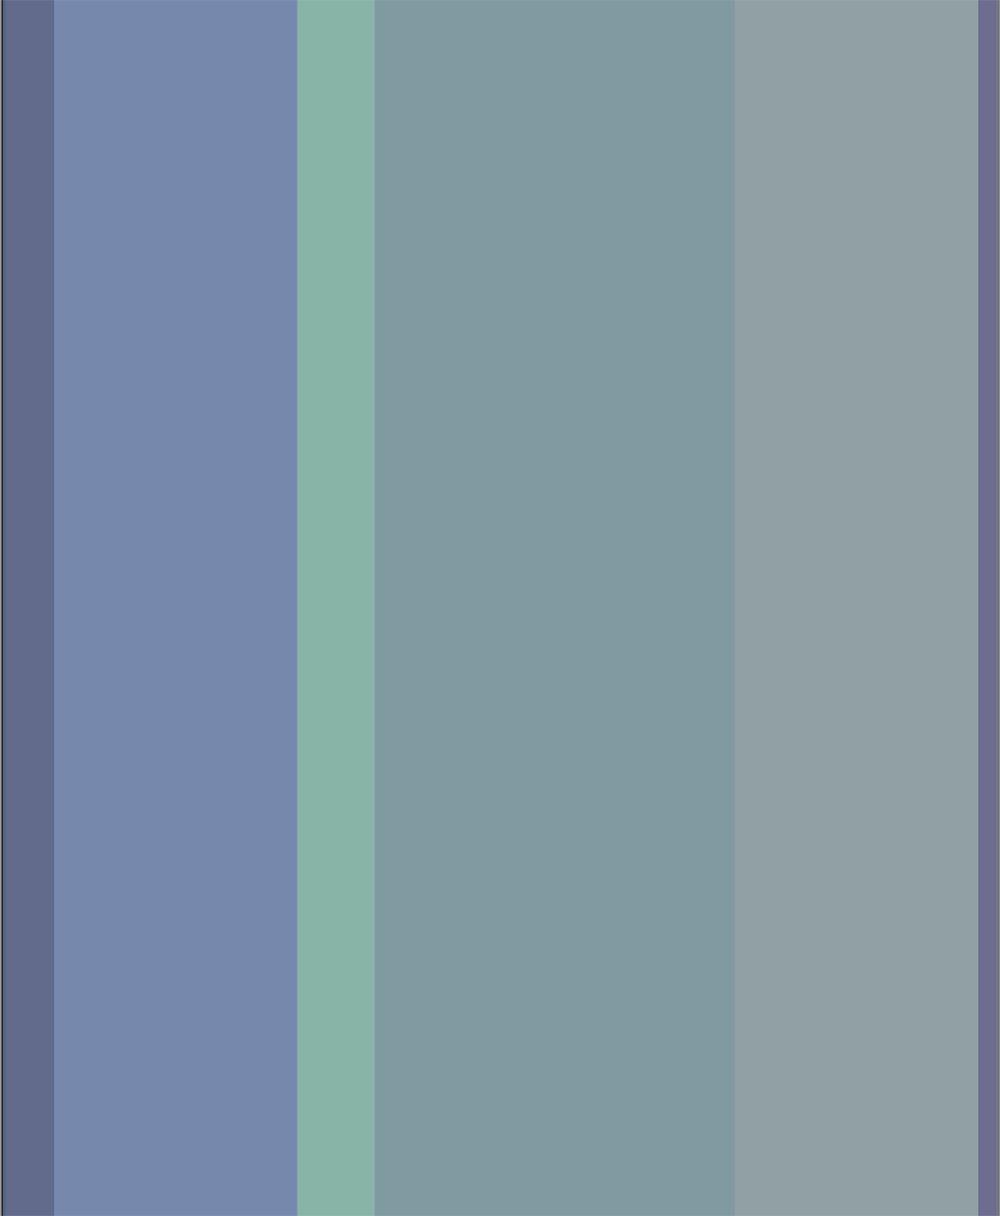 colours-20180528-sky.png